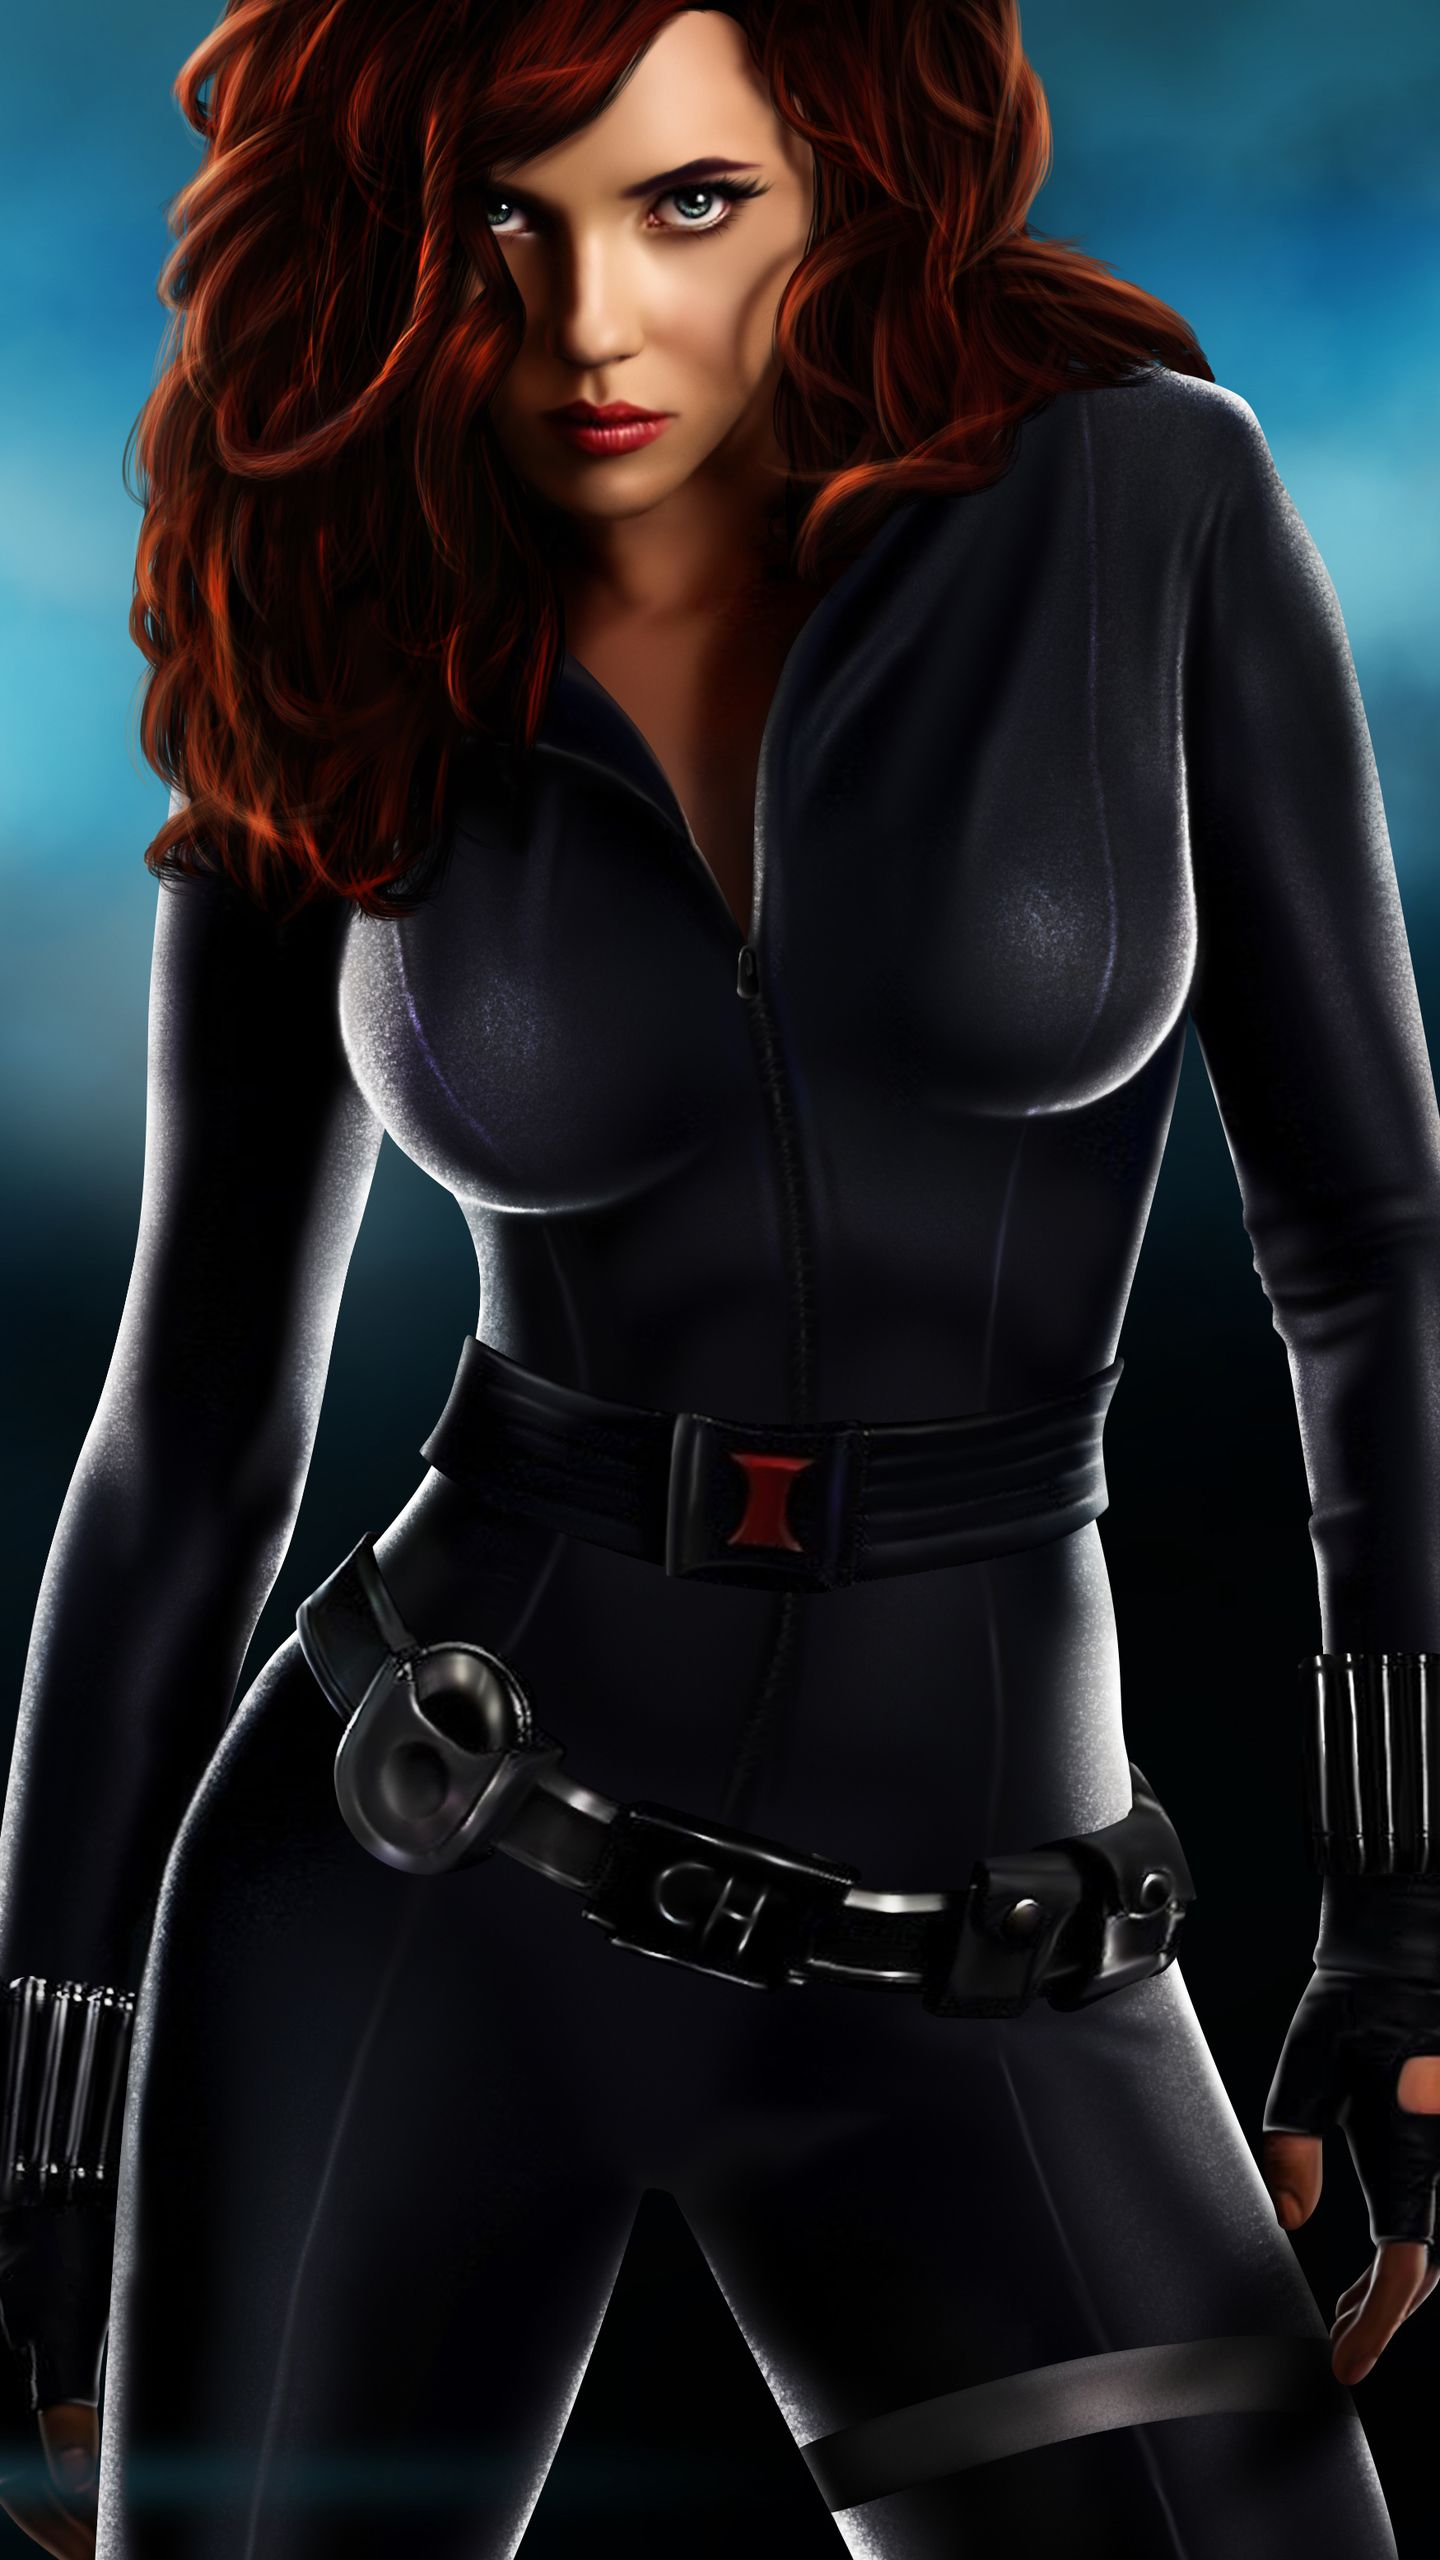 Marvel Confirms The Director Of Black Widow Starring Scarlett